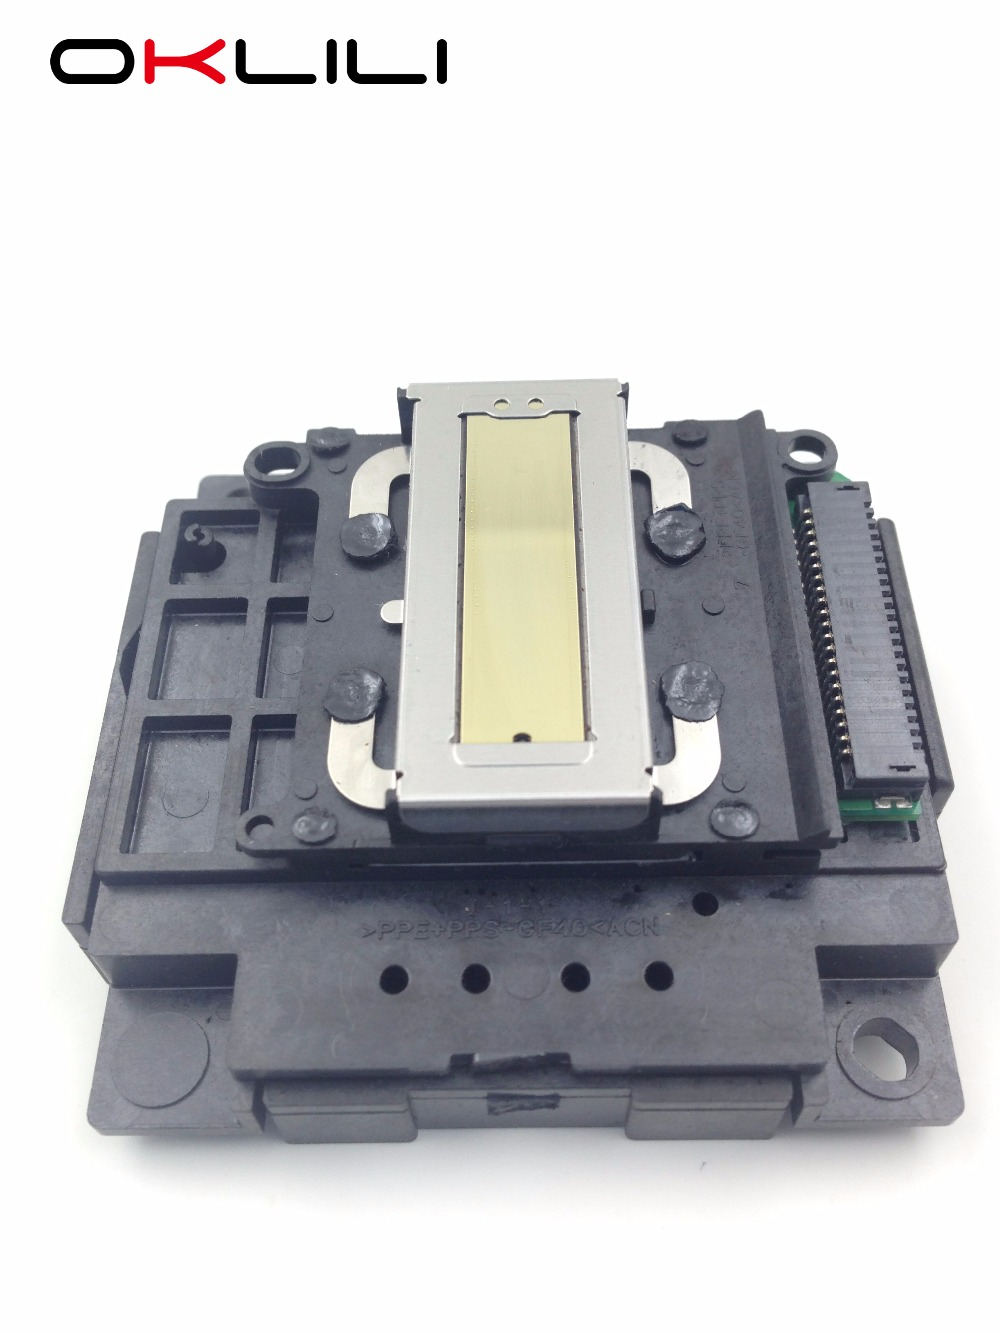 FA04000 FA04010 Printhead Print Head Printer Head for Epson WF-2010 WF-2510 WF-2520 WF-2530 WF-2540 ME401 ME303 WF2010 WF2510